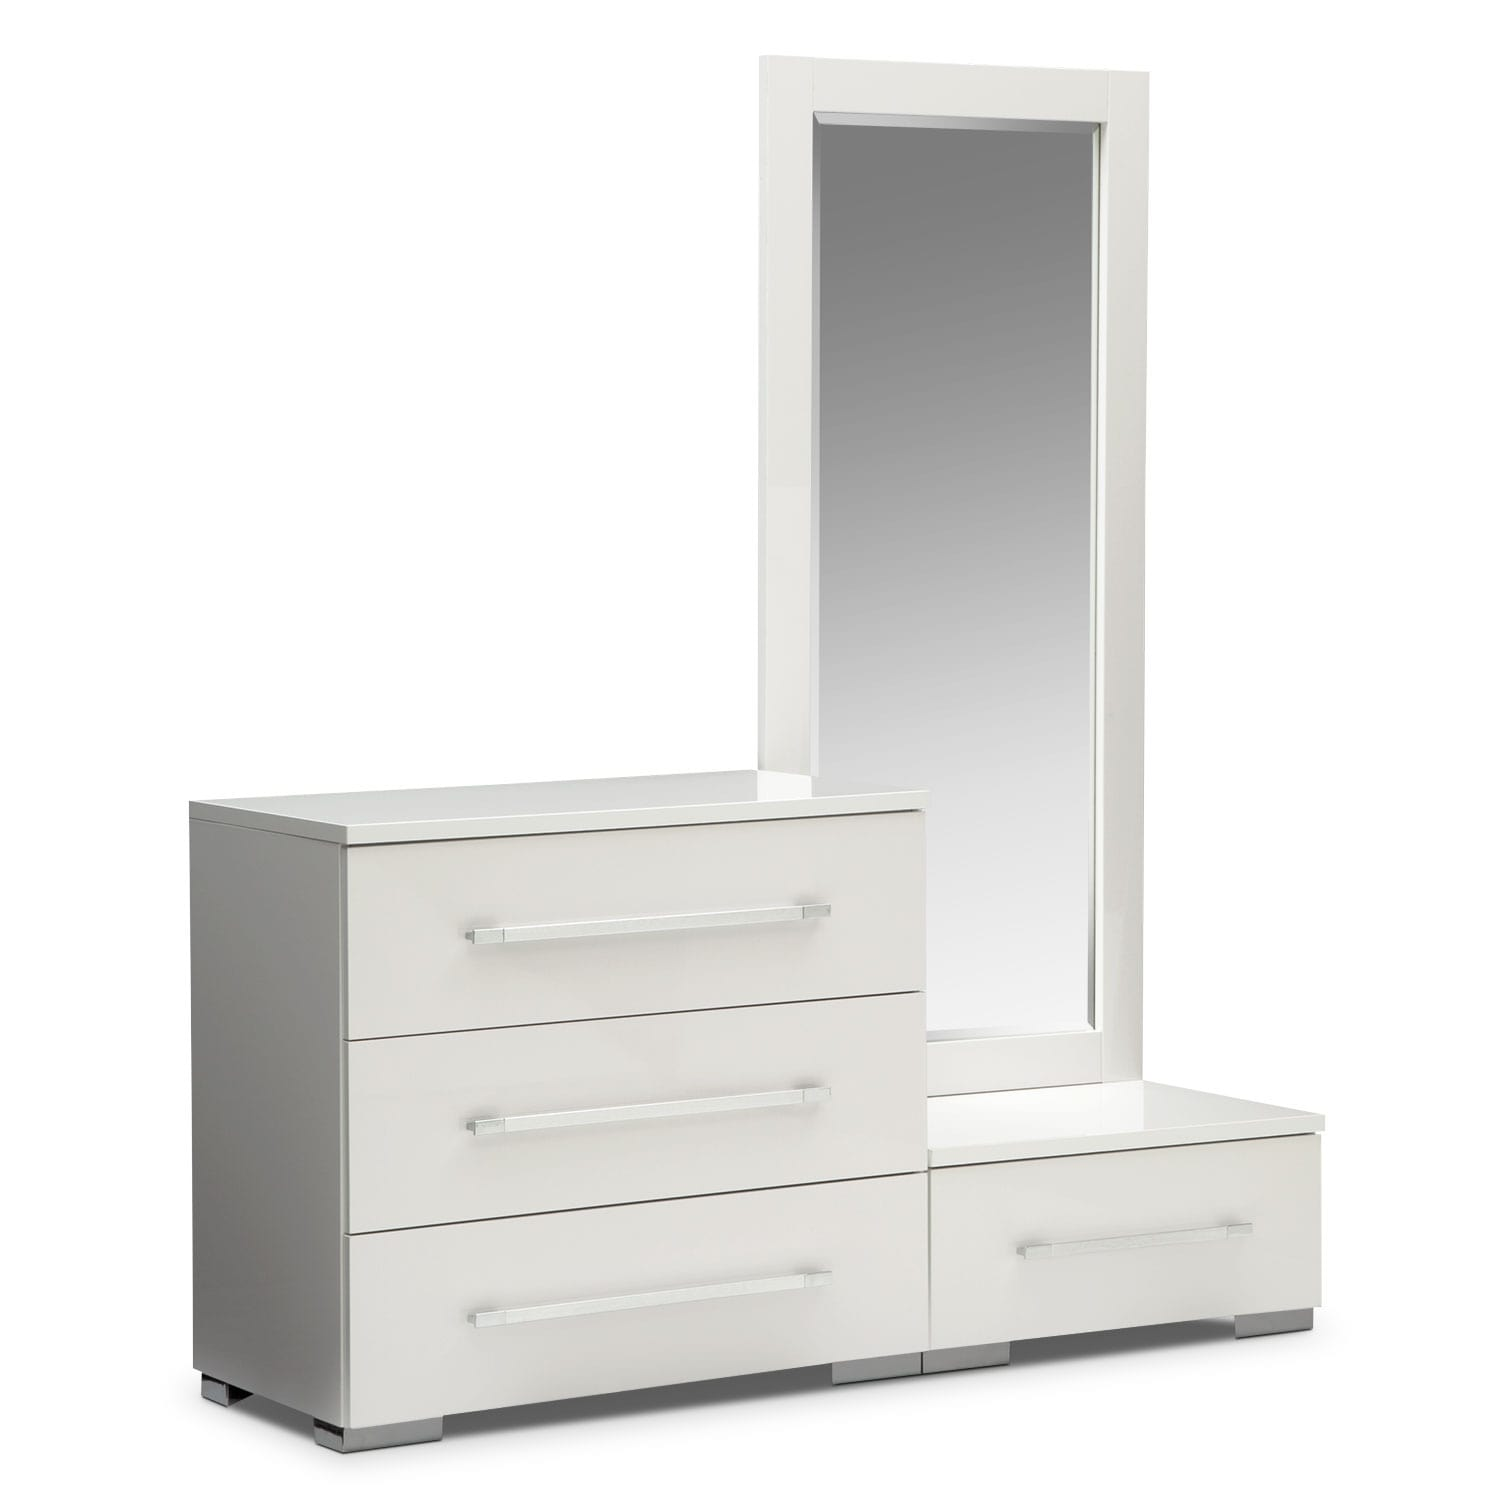 Dimora Dressing Dresser and Dressing Mirror with Step - White